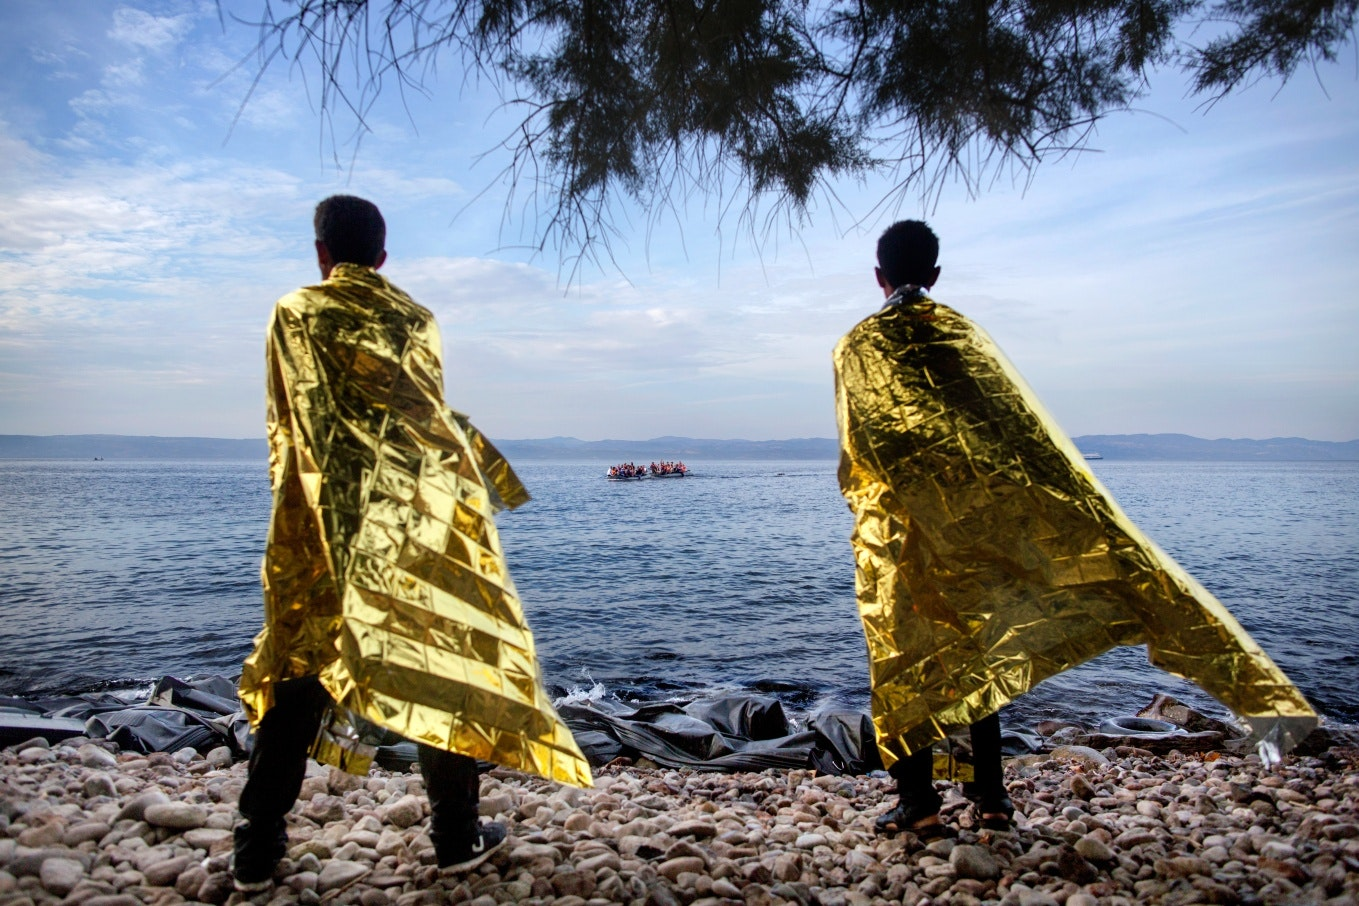 Two people wrapped in gold blankets